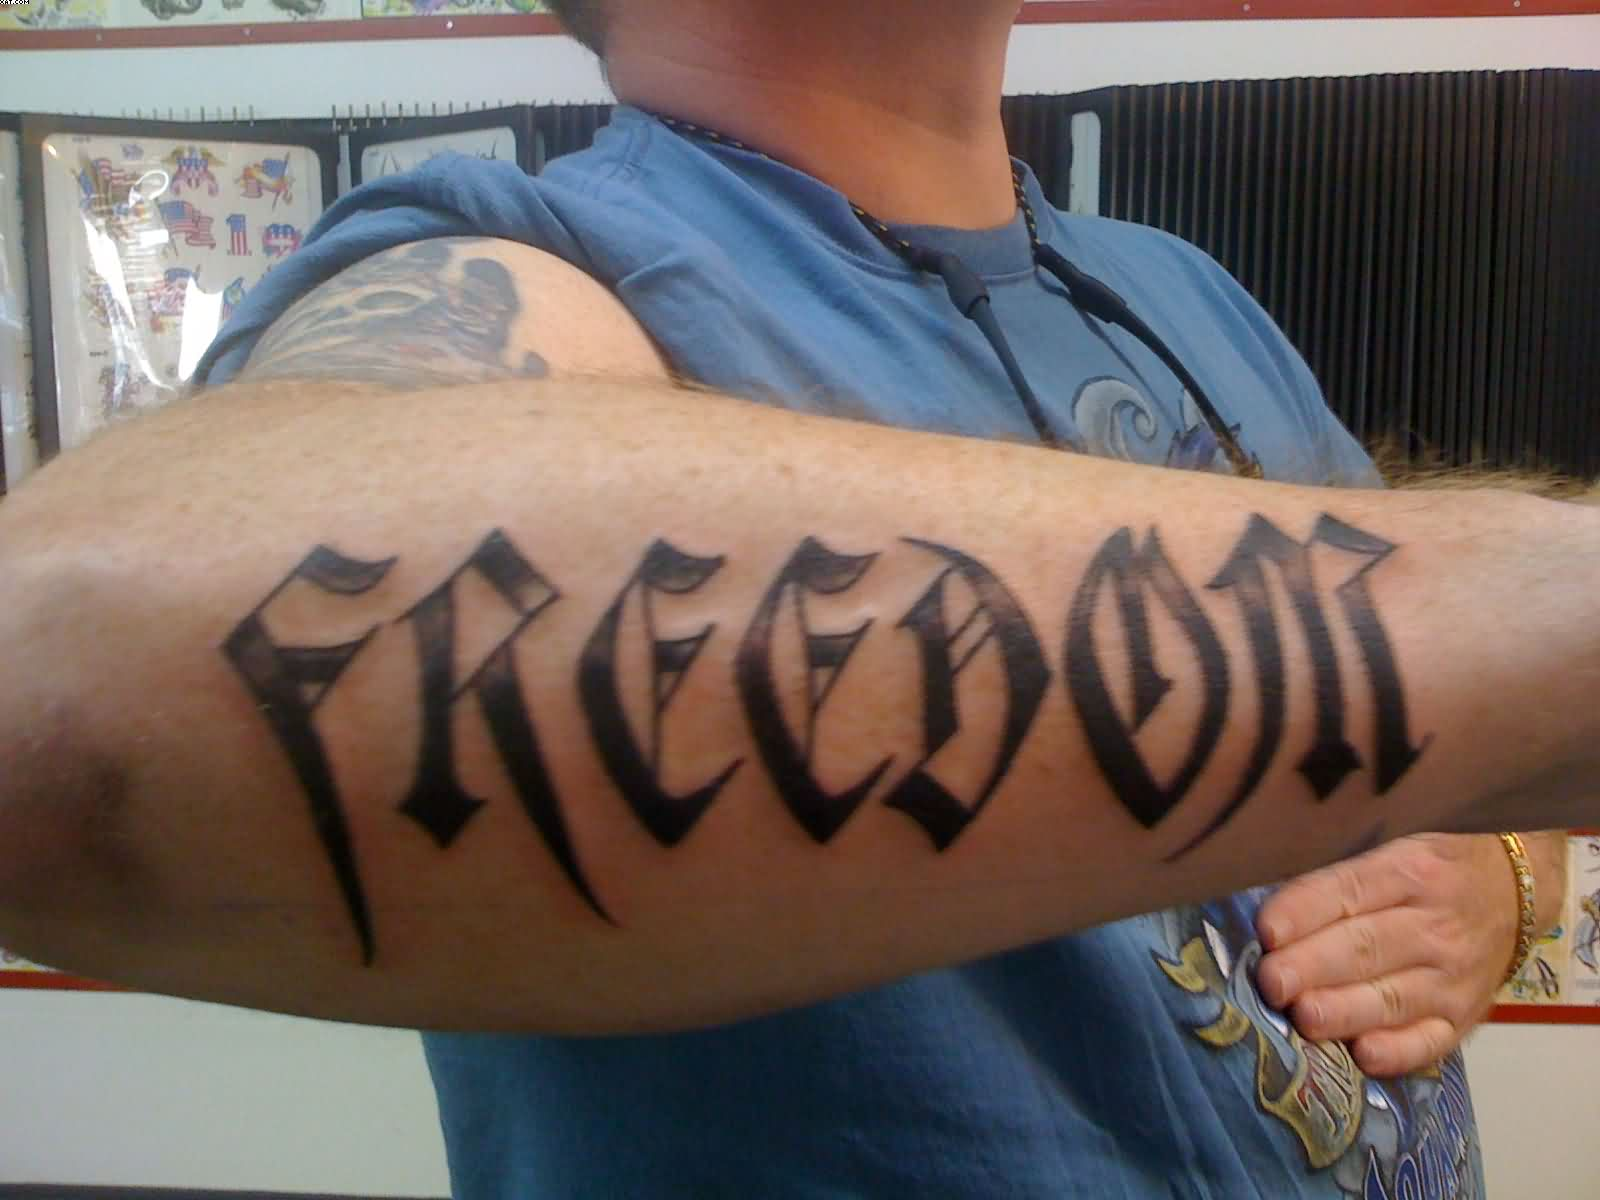 Freedom Word Arm Tattoo Design